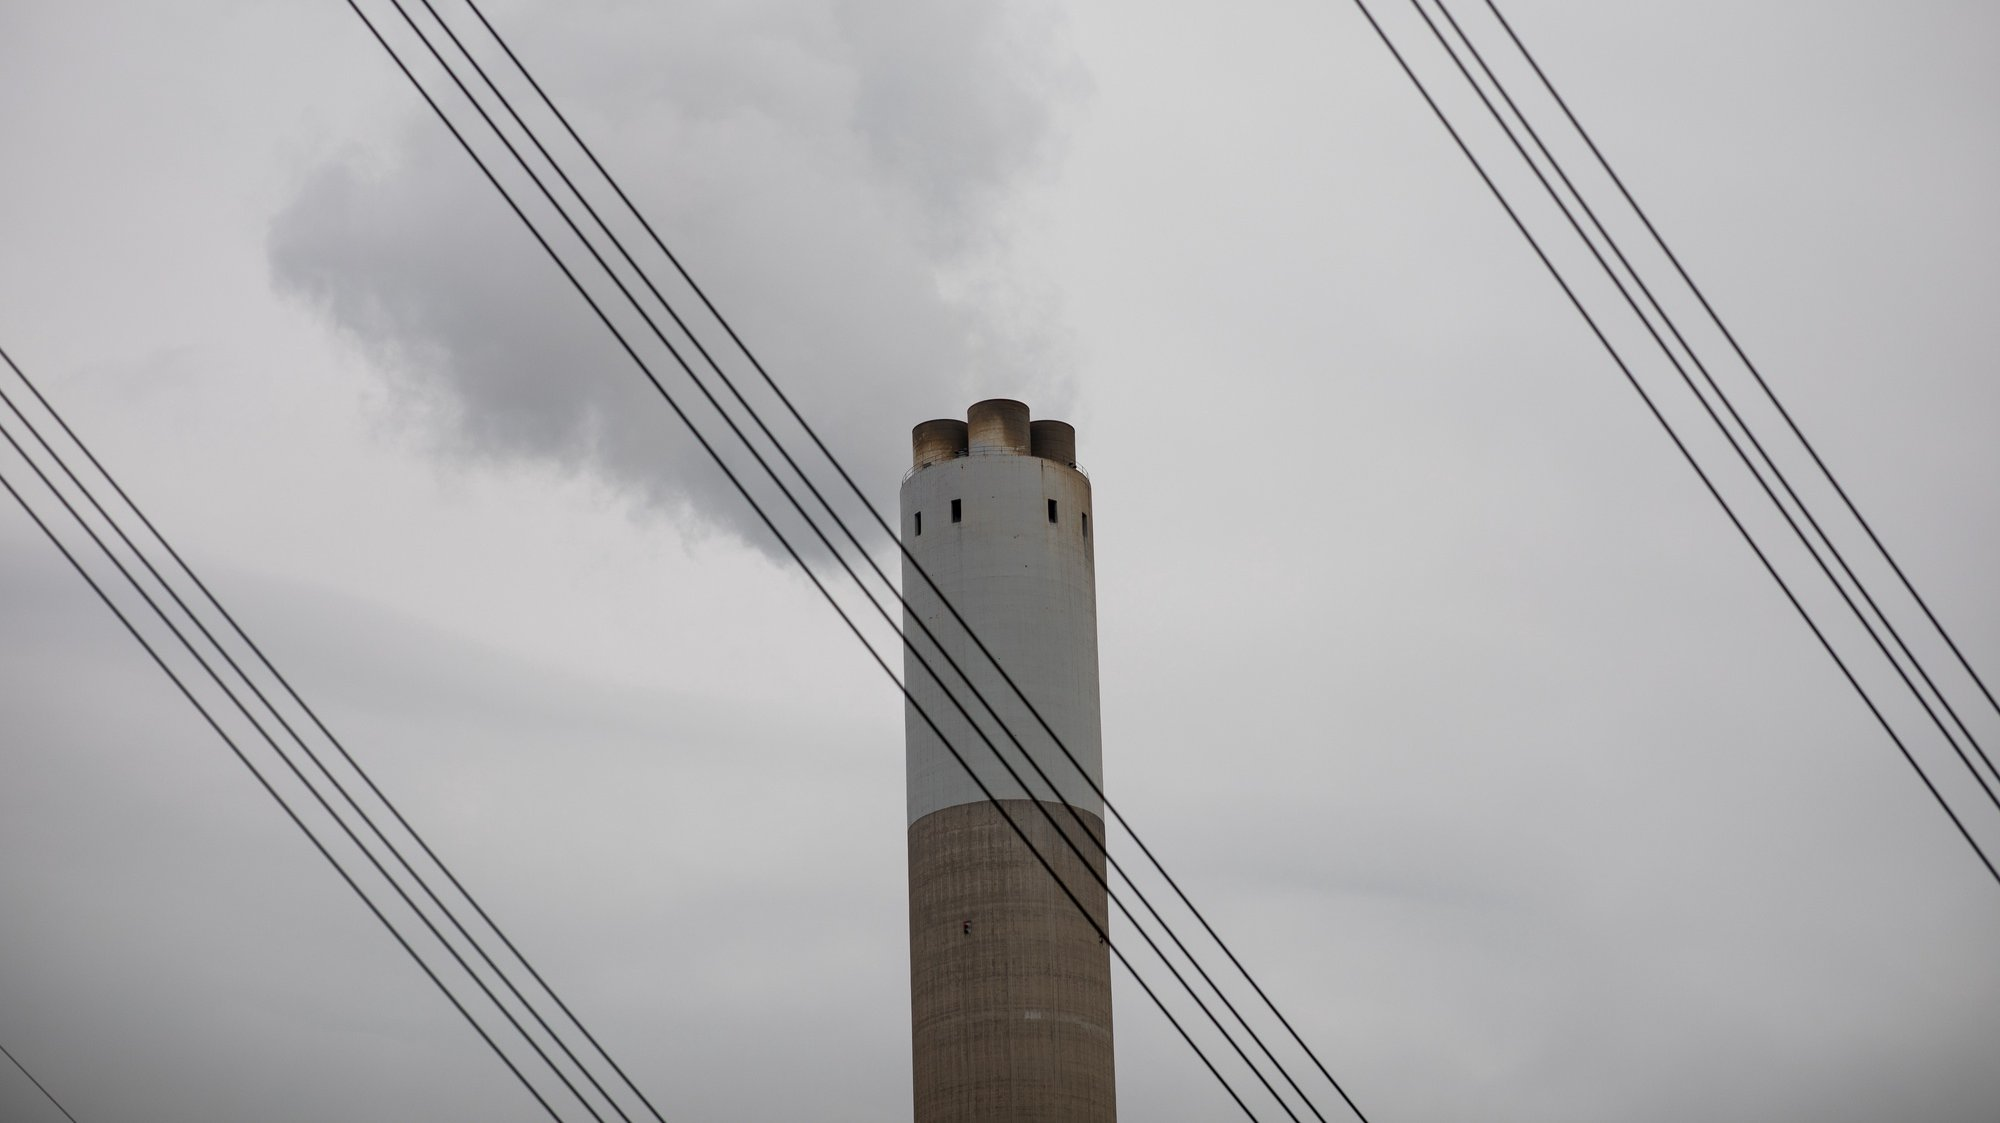 epa07225335 Smoke escapes from the chimney of the coal-fired Castle Peak Power Station in Hong Kong, China, 12 December 2018. According to an United Nations (UN) report, carbon dioxide (CO2) emissions have risen for the first time in four years. The United Nations COP24 Conference, which will take place in Poland until 14 December 2018, is struggling for a common position in the fight against climate change.  EPA/JEROME FAVRE